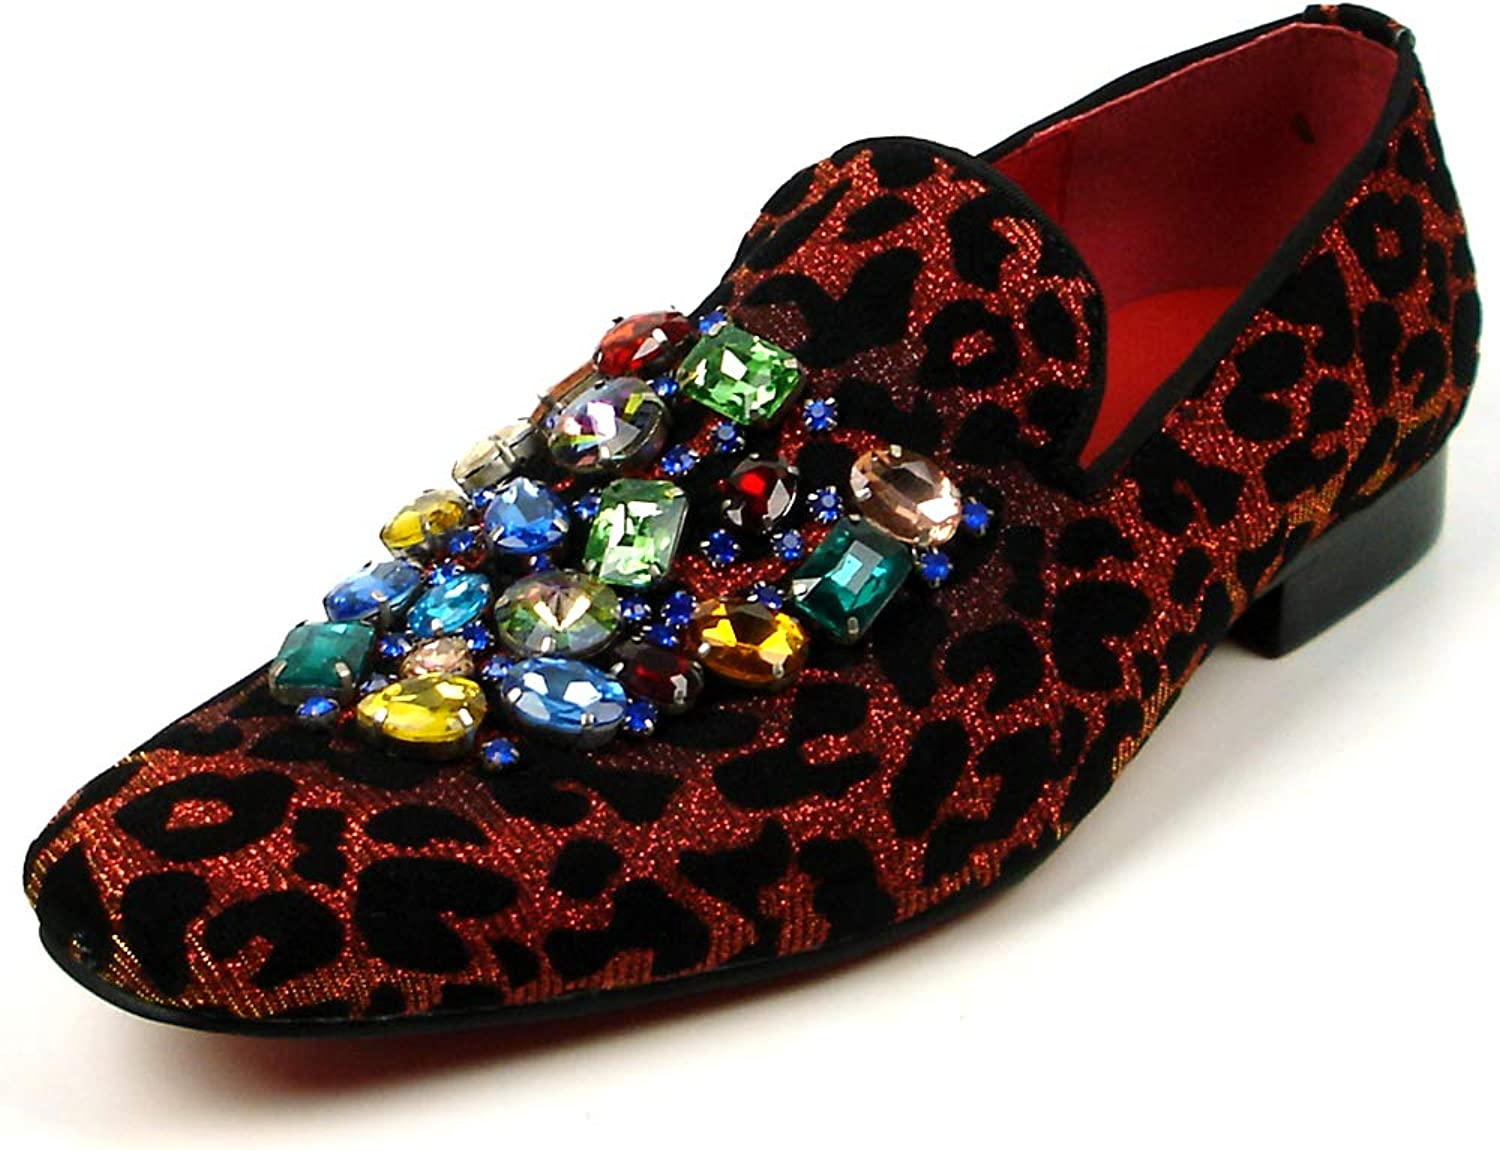 Fiesso by Aurelio Garcia FI-7422 Red Black Leopard Velvet with Multi color Crystals Slip on Loafer - European shoes Designs